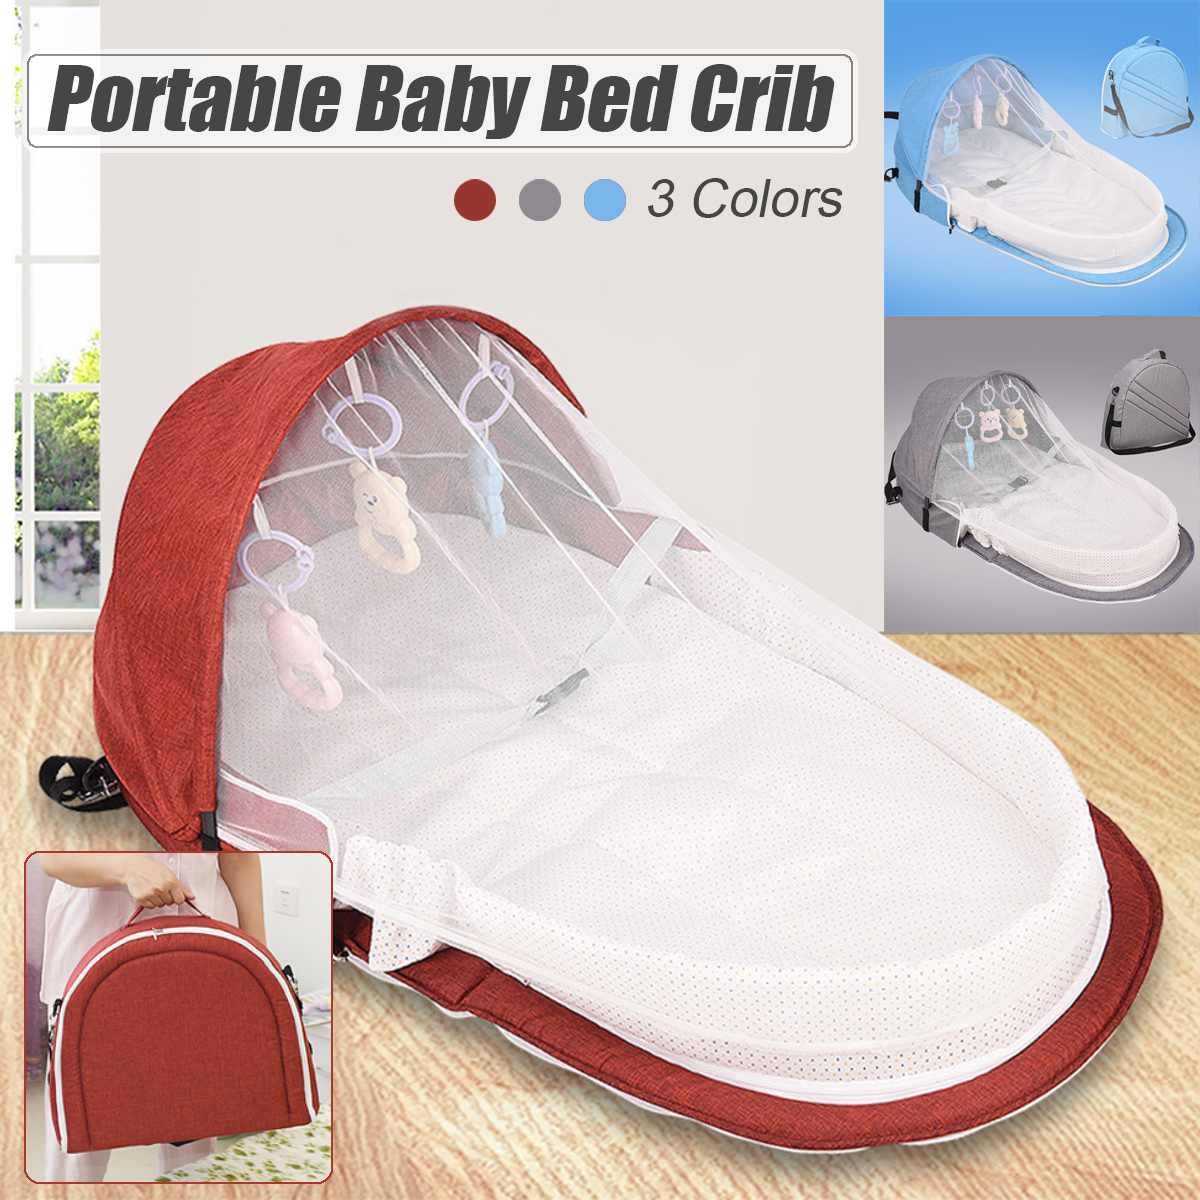 Portable Foldable Baby Bed Multi-function Crib Mummy Bag With Mosquito Cover Diaper Change Bed For Travelling Red Blue Gray